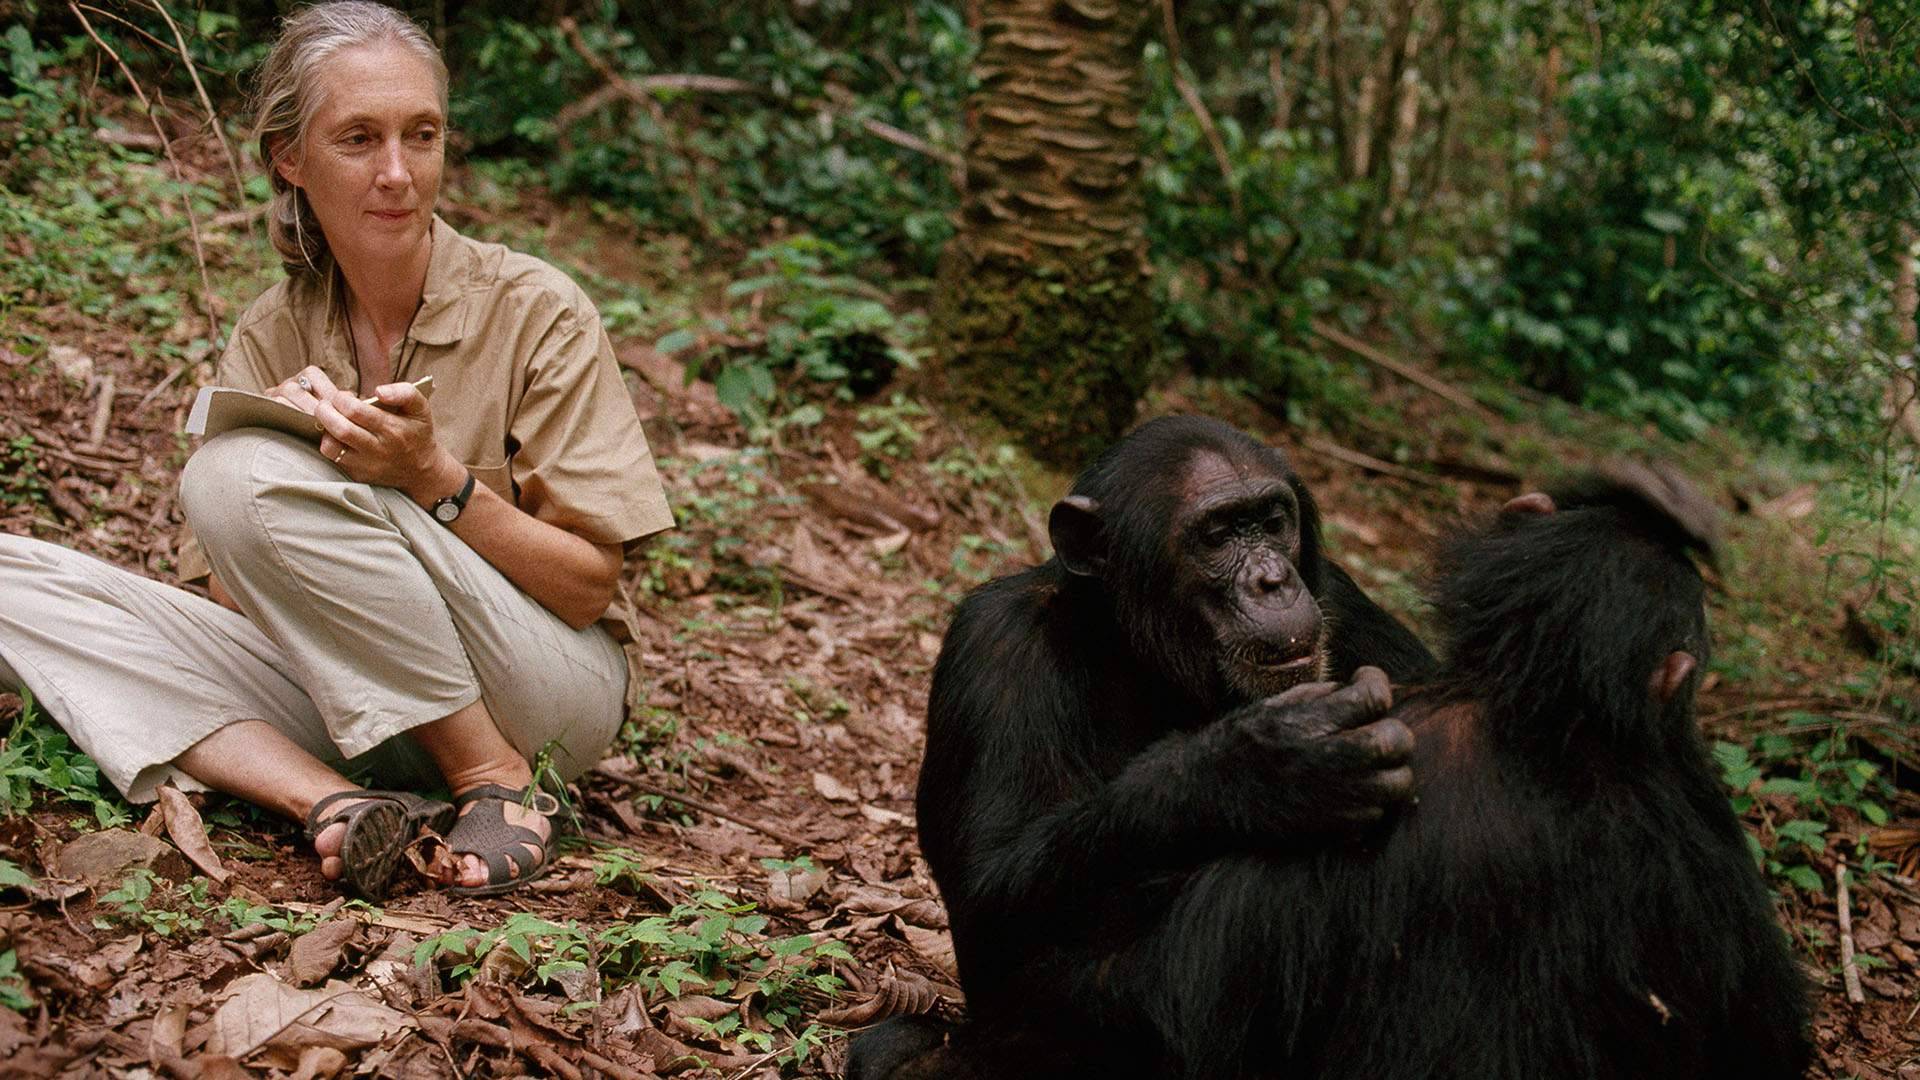 Dr Jane Goodall Is Coming to New Zealand to Chat About Her Pioneering Work with Chimpanzees